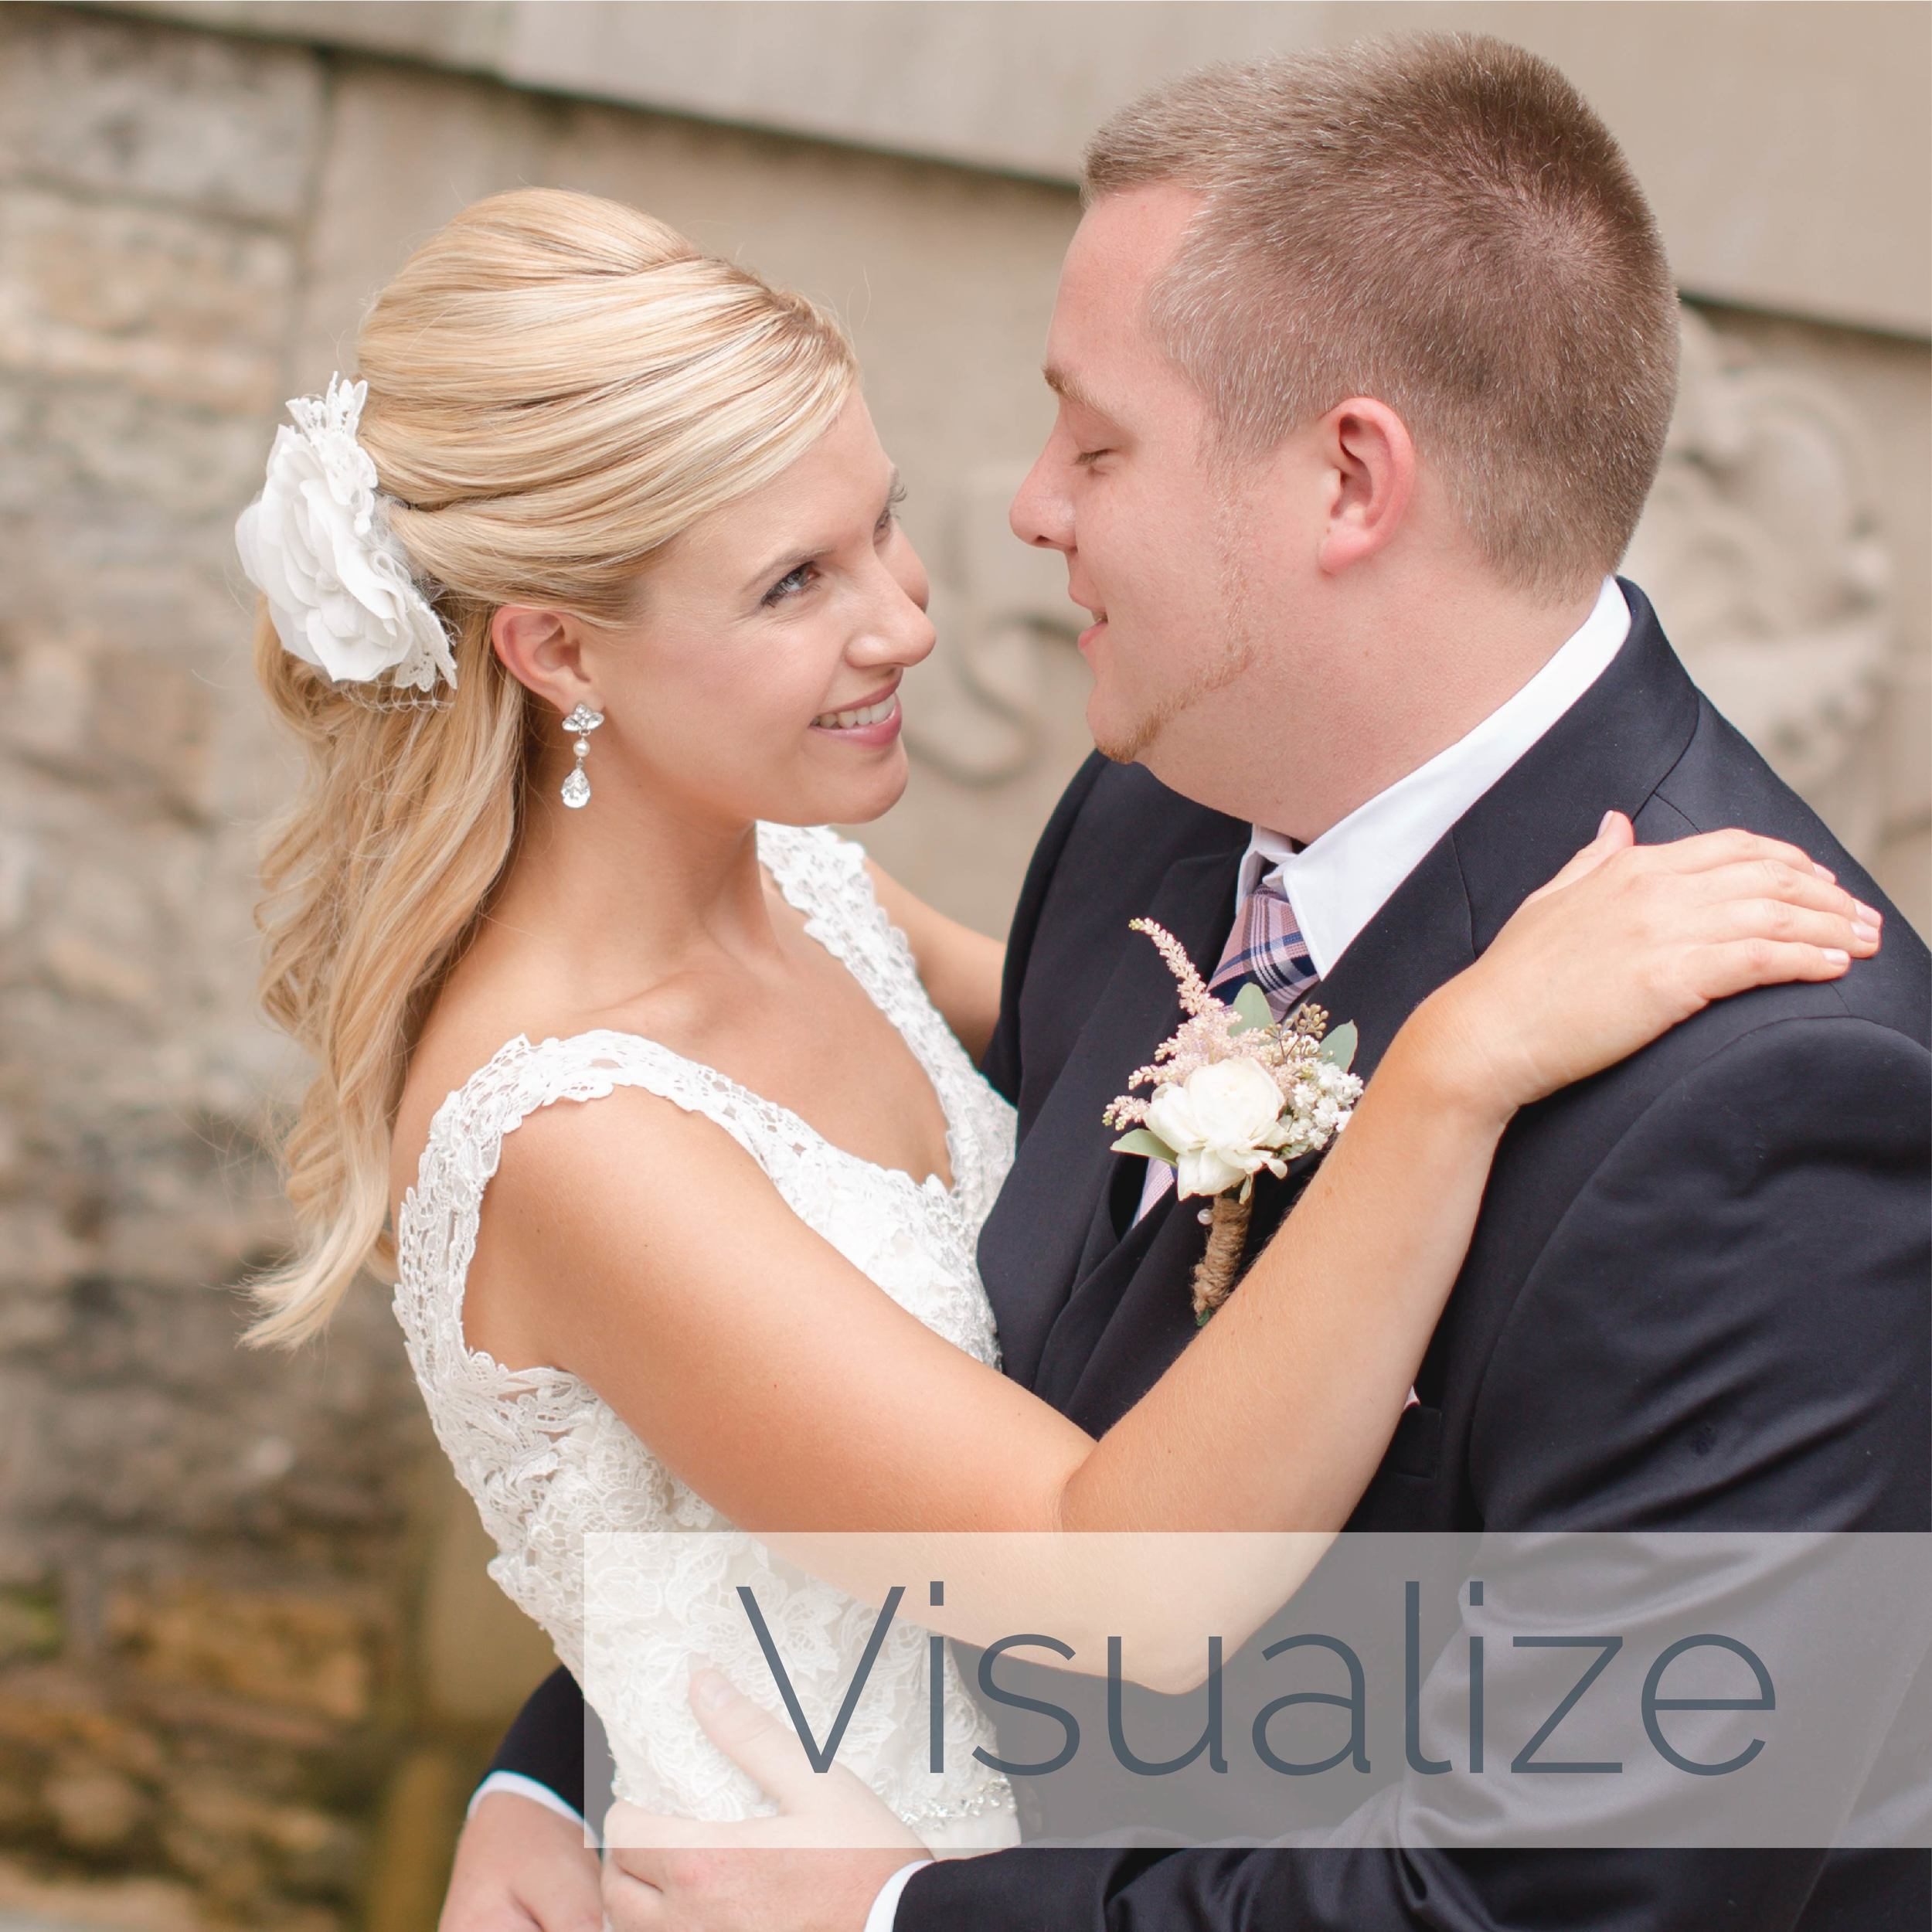 Visualize Stephanie Marie Photography Wedding Engagement Galleries